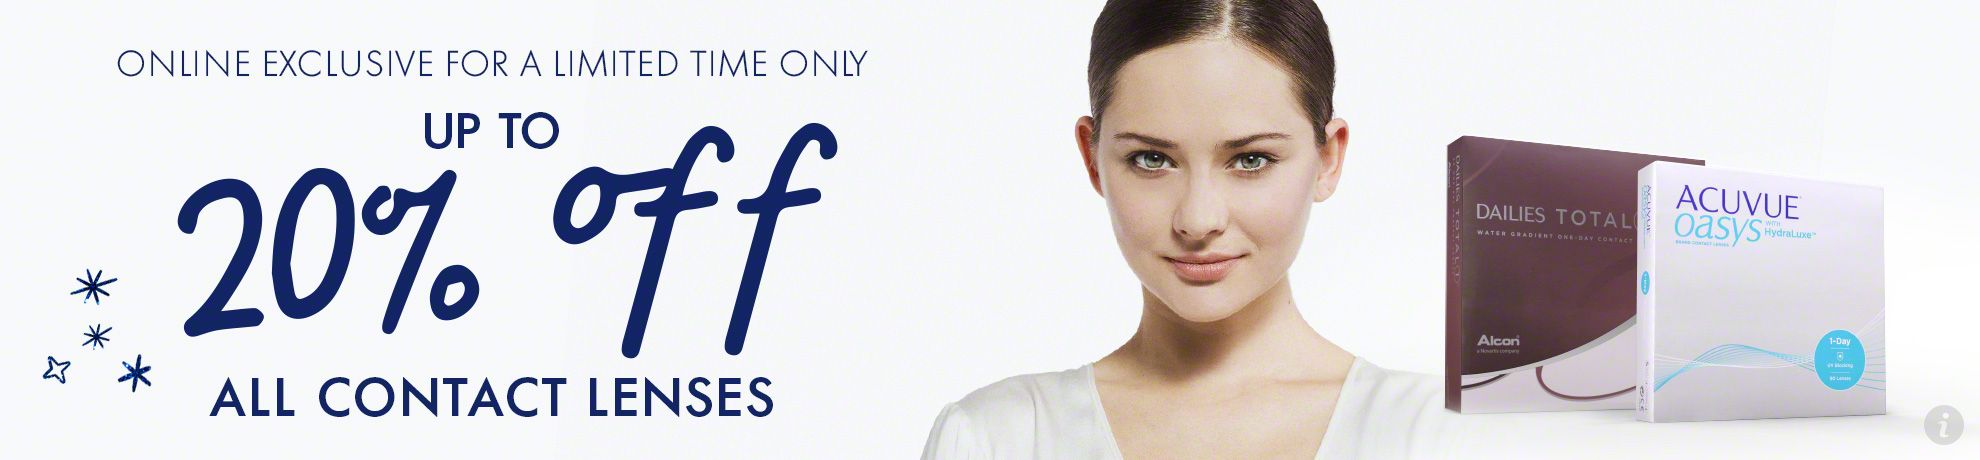 Up to 20% on contact lenses